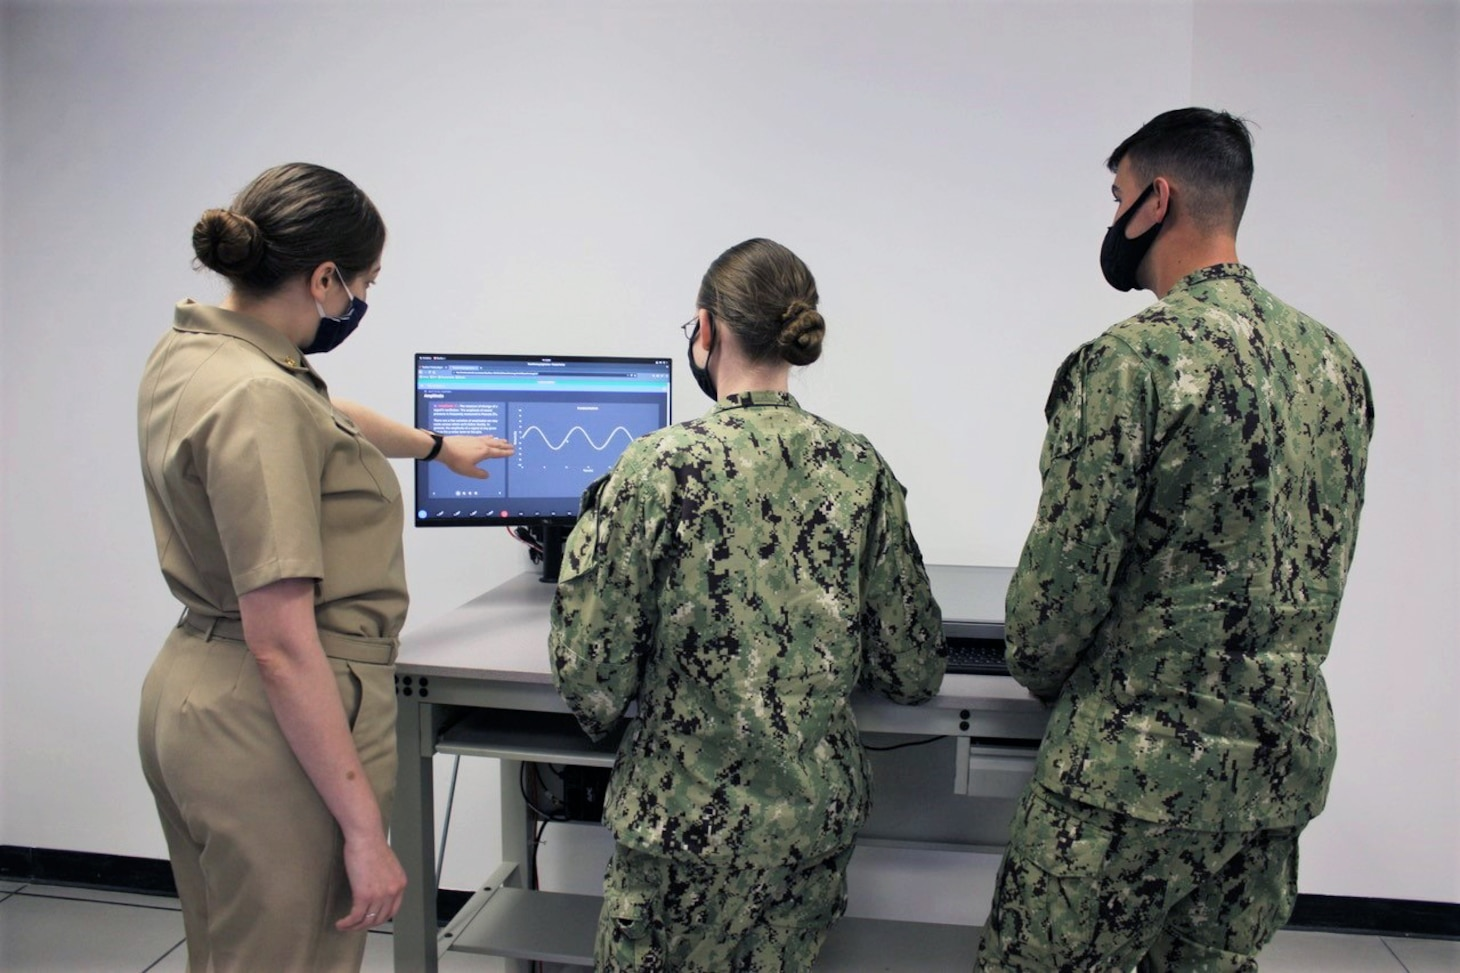 SAN DIEGO (March 11, 2021) Sailors from the Center for Surface Combat Systems' (CSCS) Fleet Anti-Submarine Warfare Training Center (FASW) are operating the dual display station (DDS) workstation, a unique feature of the AN/SQQ-89A(V)15 Virtual Operator Trainer (VOT) that provides geographic plotting capability to aid in gaining situational awareness and conduct undersea warfare fire control solution development.  The workstation was designed to be a commercial-equivalent representation of the DDS installed aboard Arleigh Burke-class guided missile destroyers and Ticonderoga-class guided-missile cruisers in the combat information center. (U.S. Navy photo by Lt. Samantha Drumb)